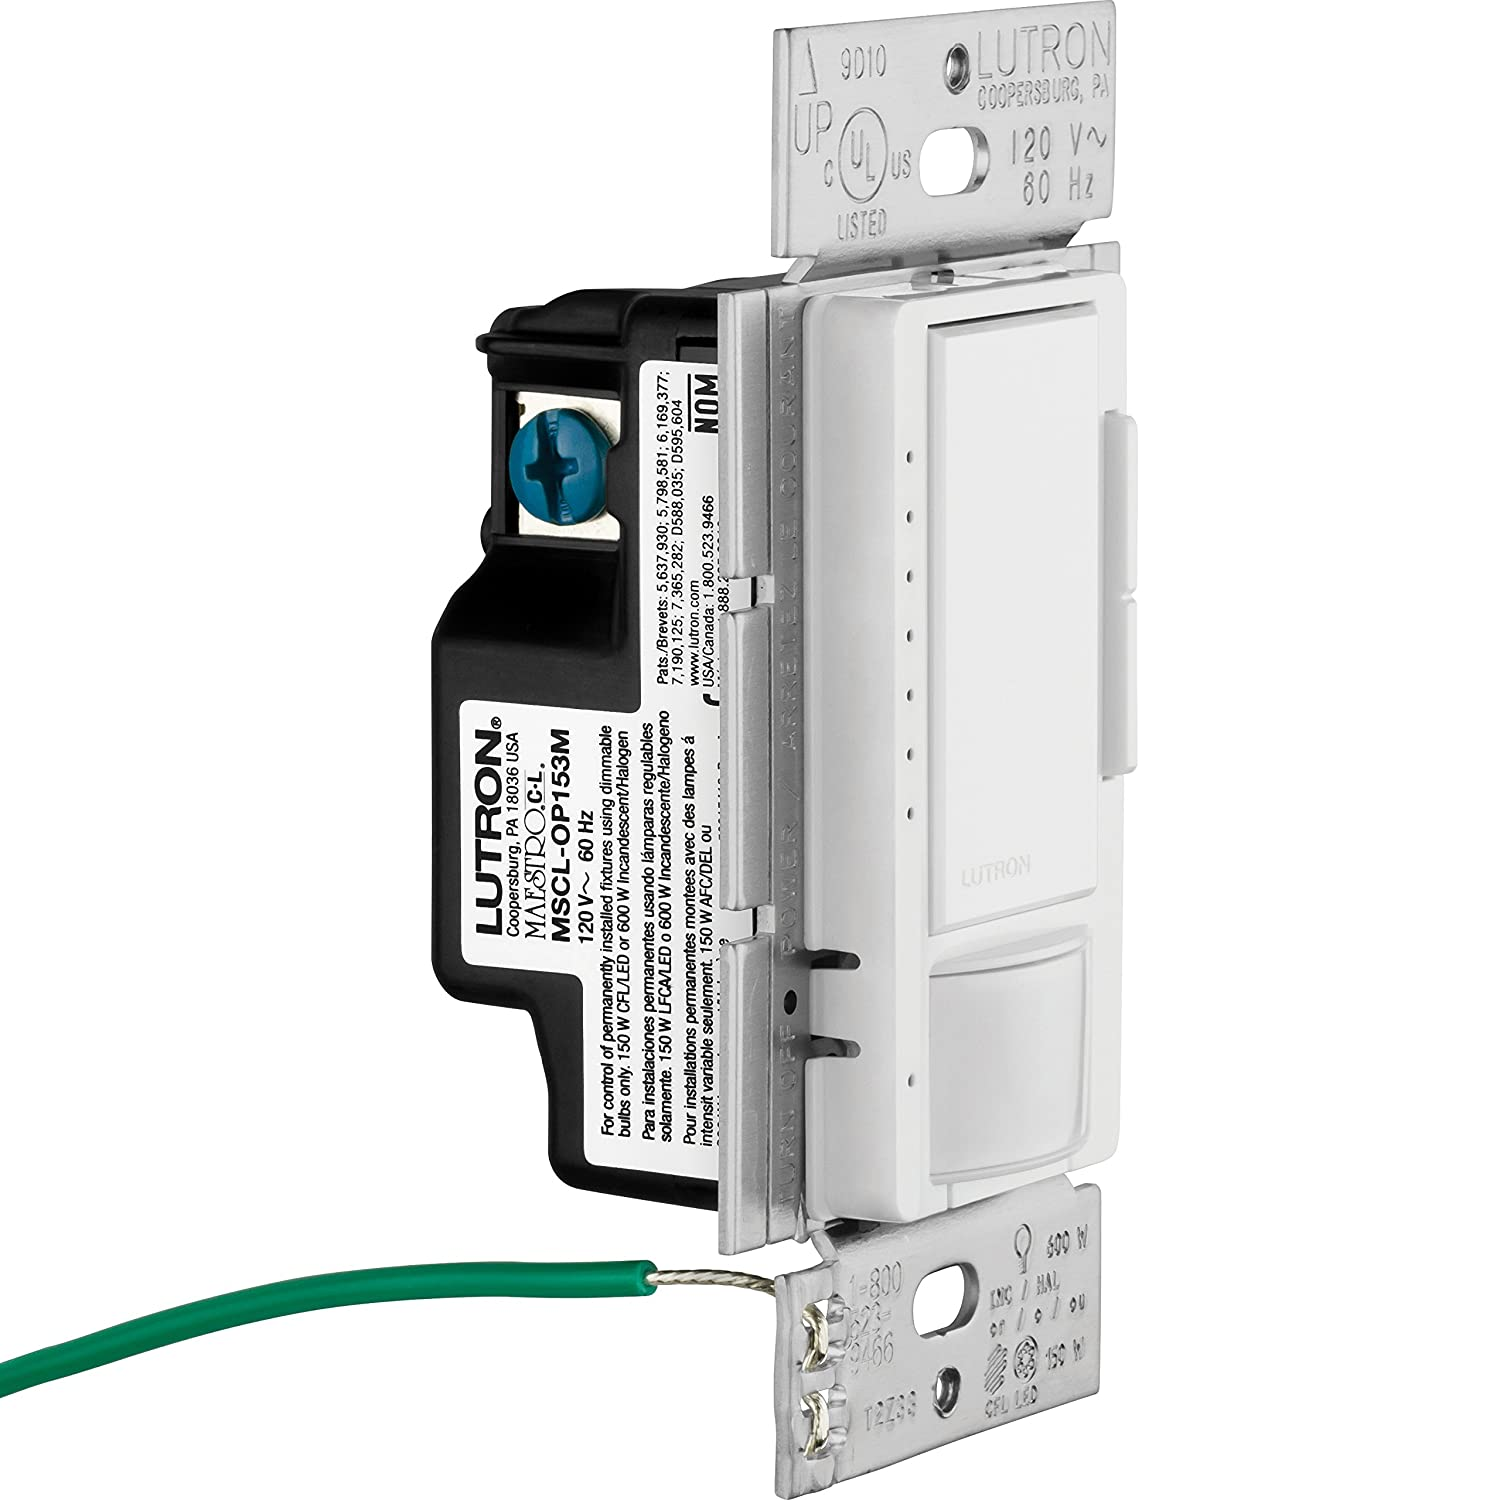 81Np1x7uO2L._SL1500_ lutron maestro c l dimmer and motion sensor, single pole and multi  at readyjetset.co